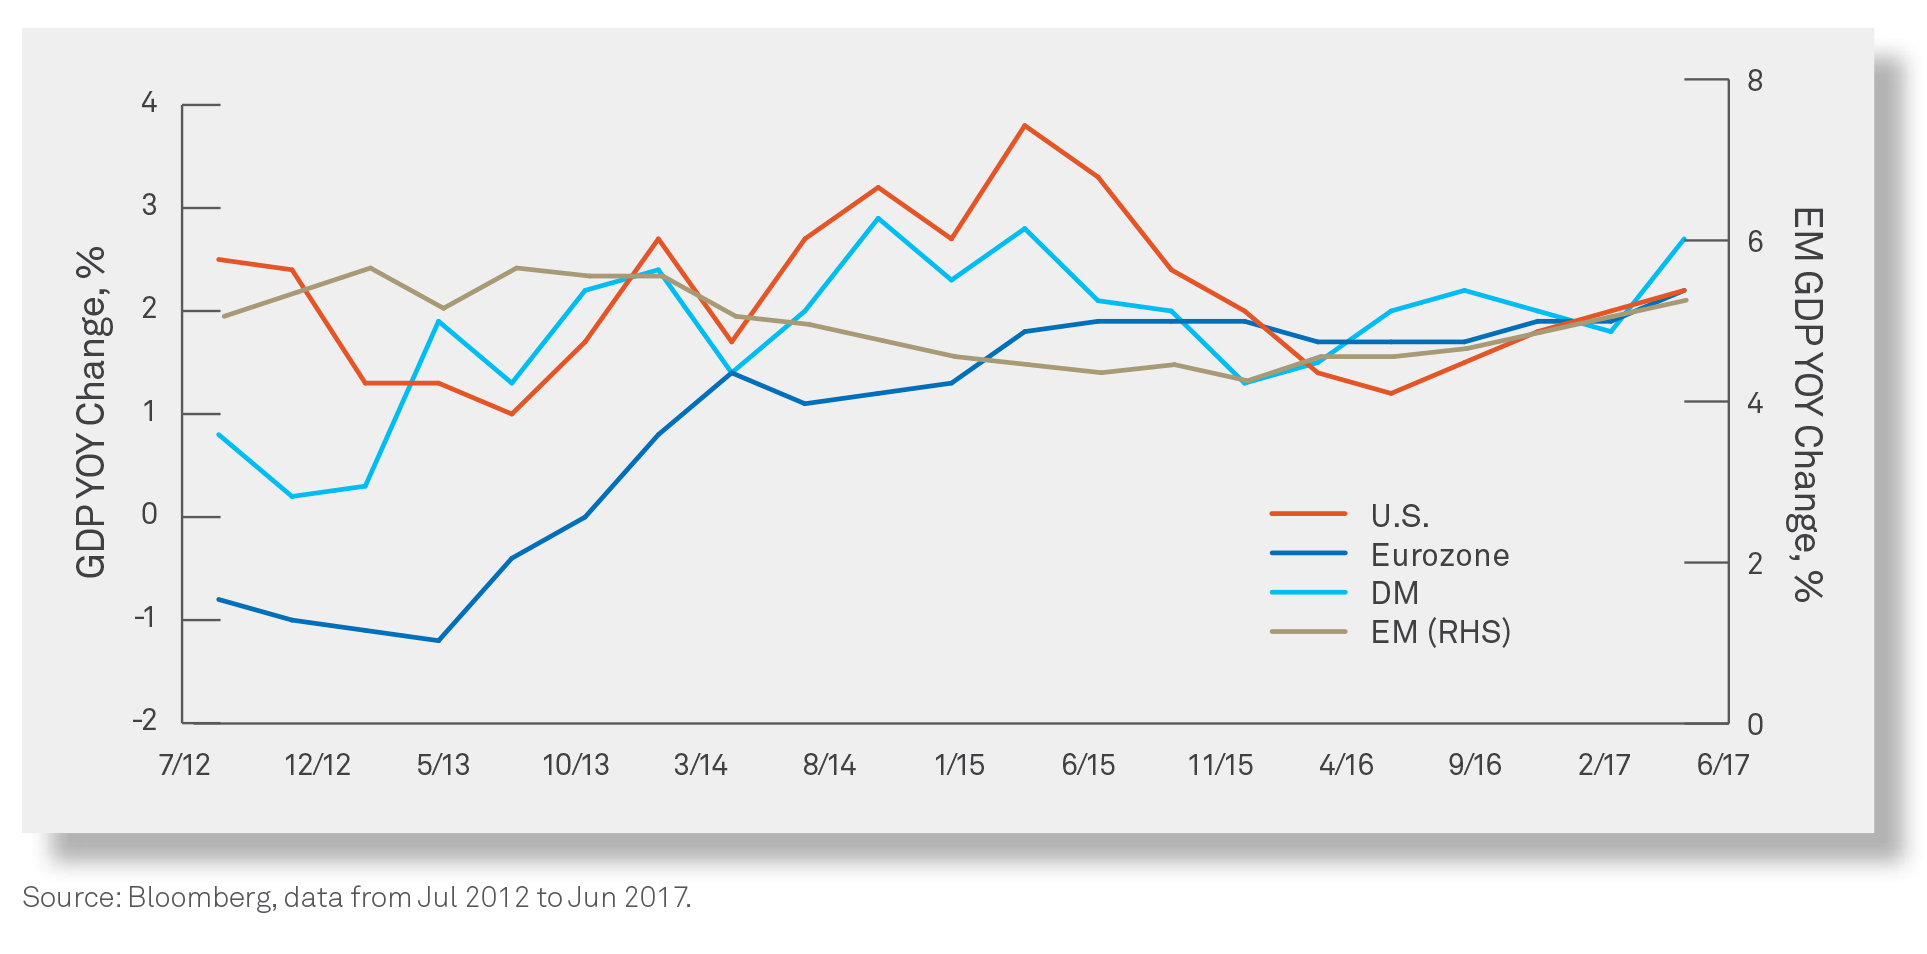 the strength of us dollar from the global perspective The dollar has ousted the vix index as a barometer of the banking sector's   bank leverage, our results suggest that the strength of the dollar is a key  for a  global perspective in tracking the functioning of the financial system.